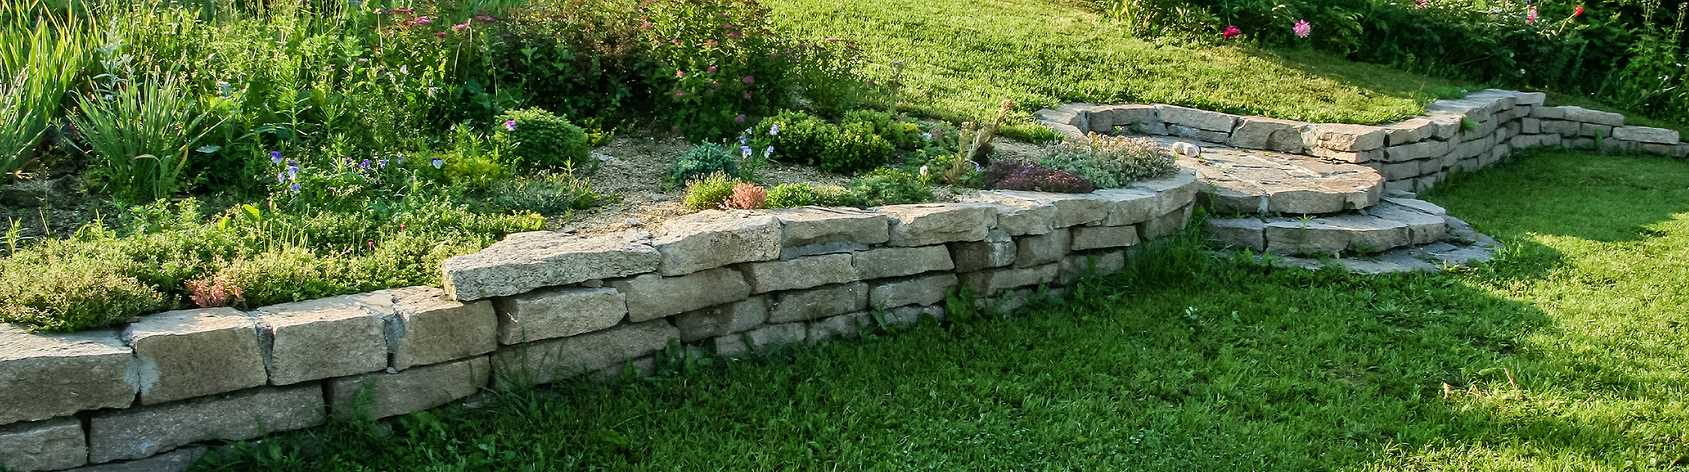 Landscape Design Services - Landscaping Companies Springfield MO